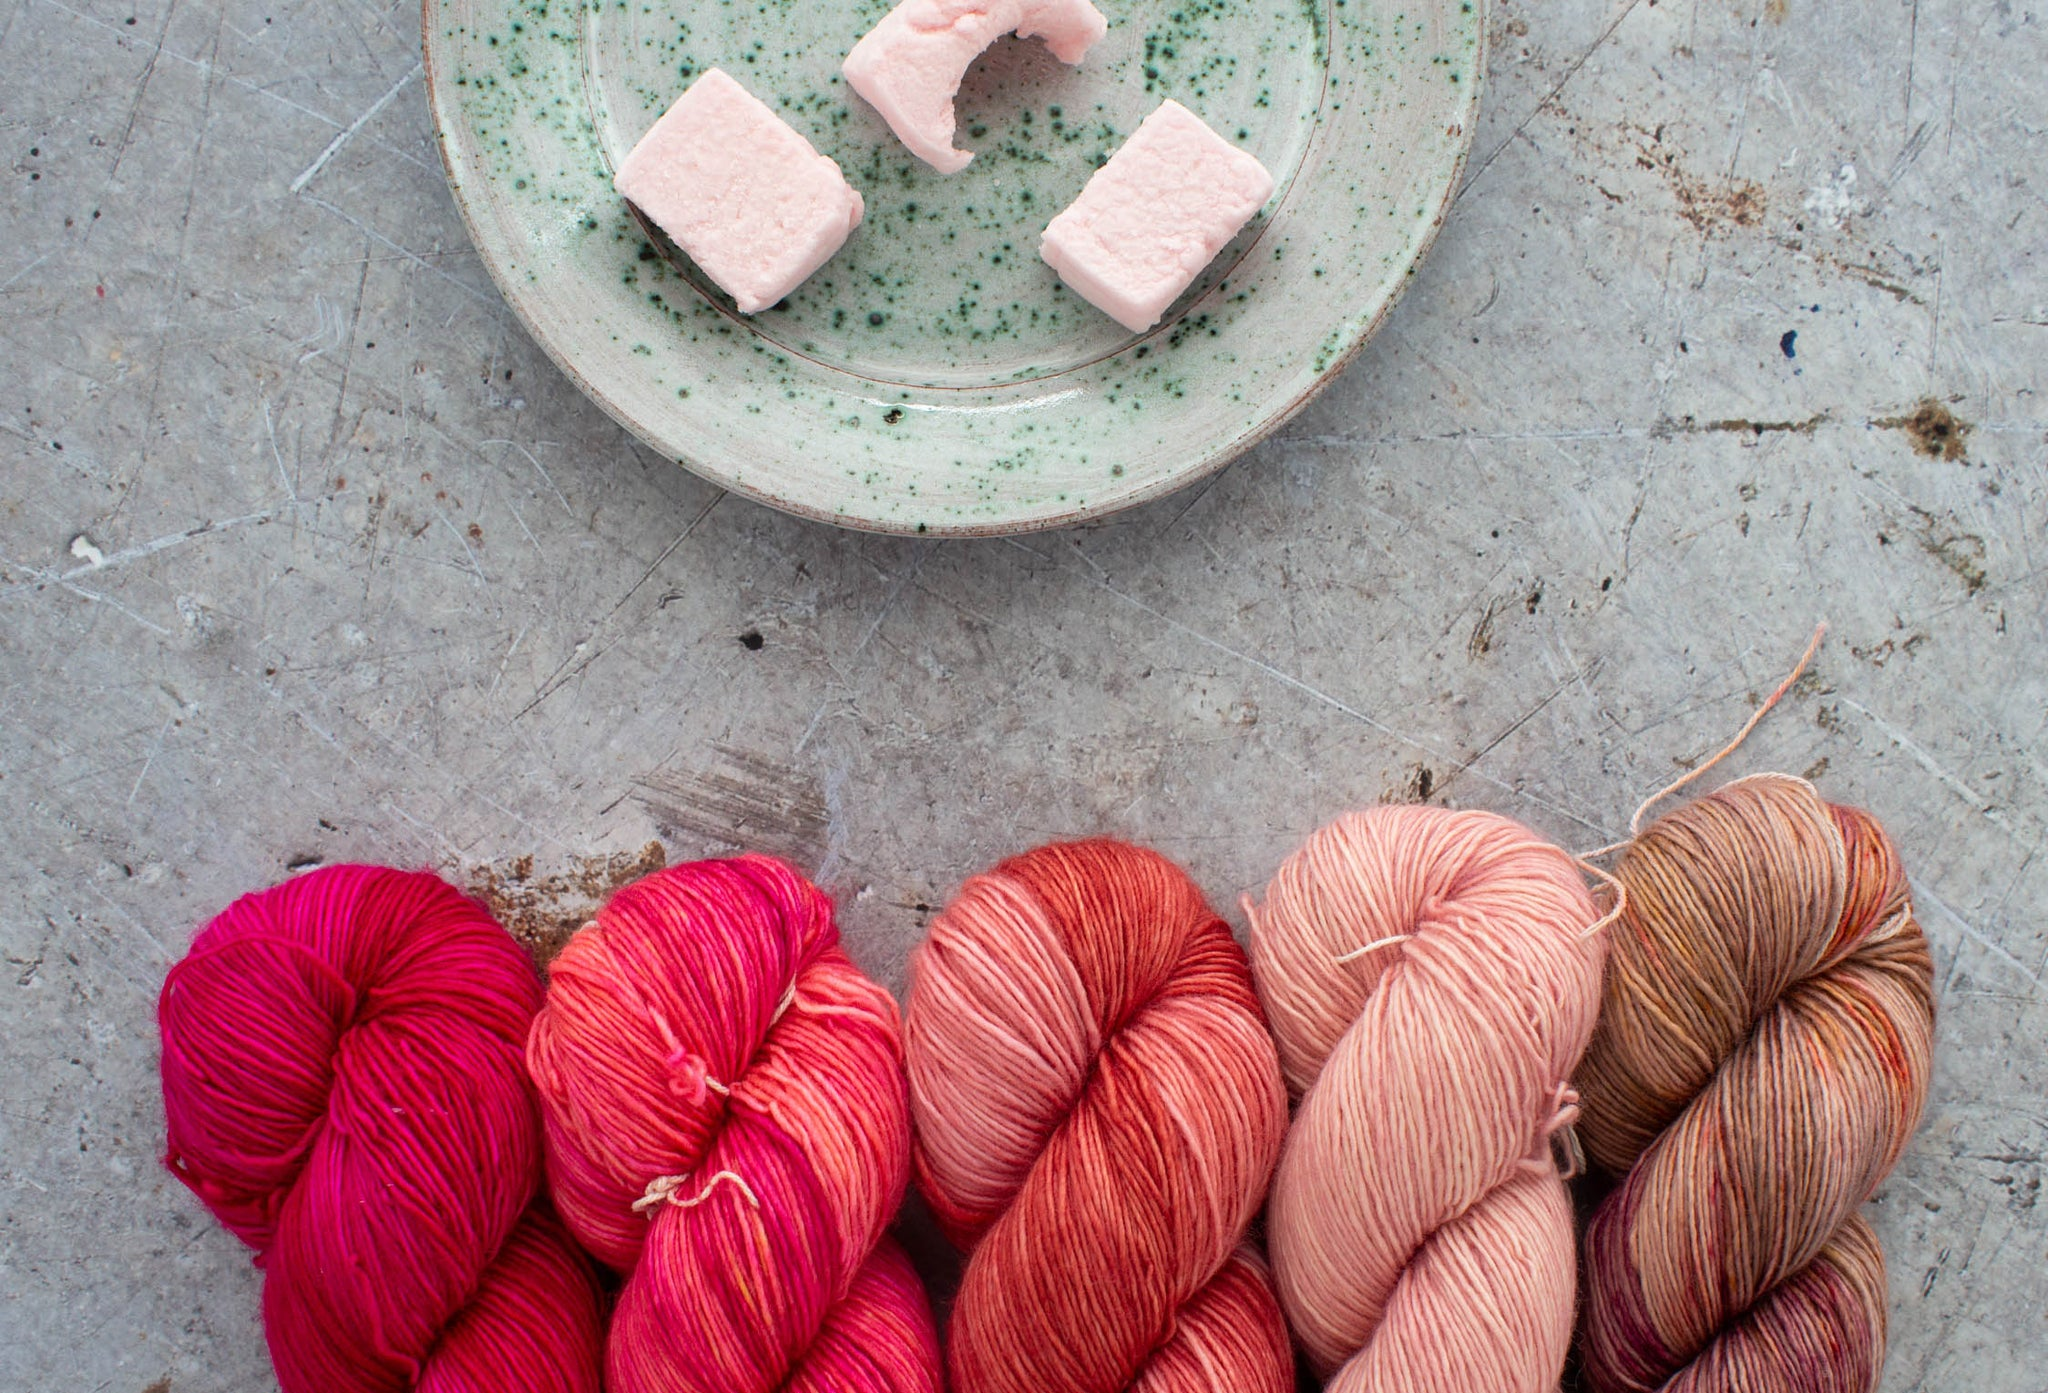 5 skeins of hand dyed yarn in hues of pink line up along the bottom of the image. Above is a speckled plate with pink marshmallows is just above. They are on a scratched metal background.